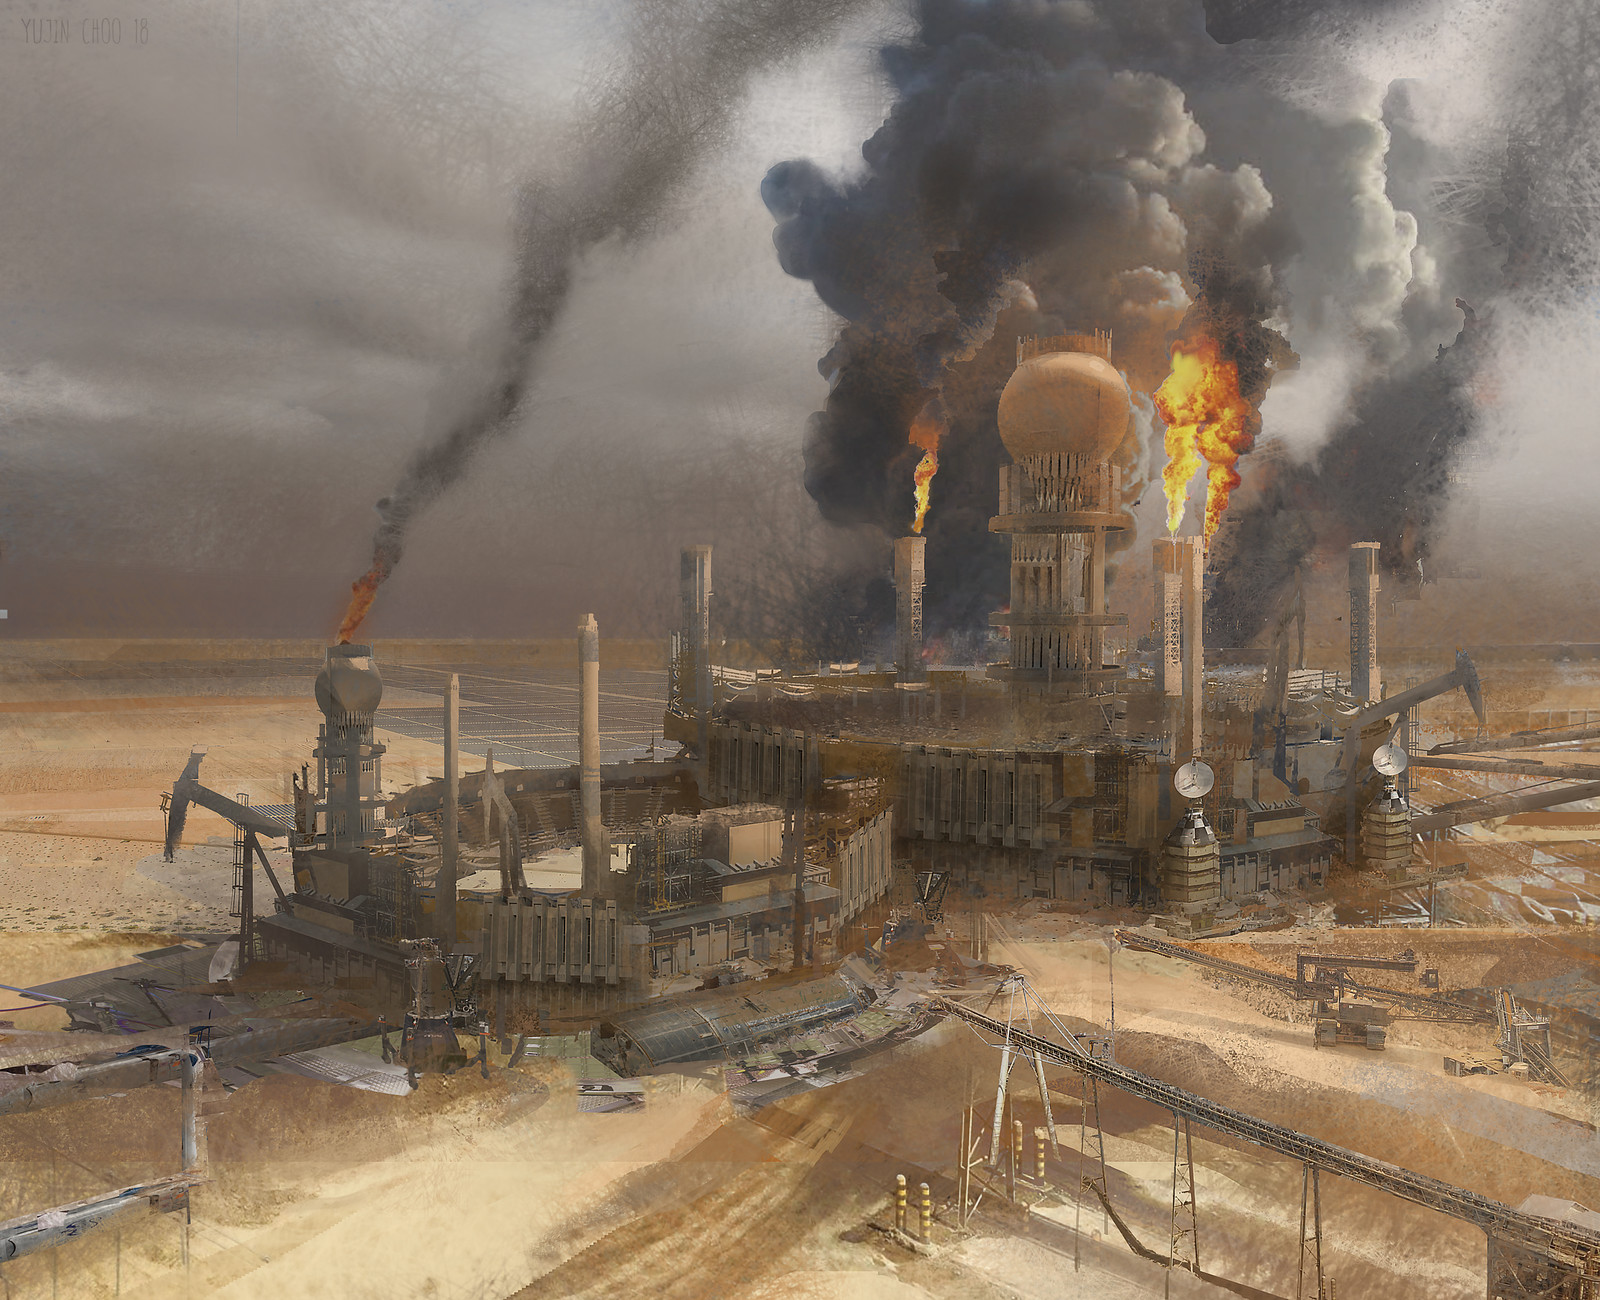 OilField_finished one